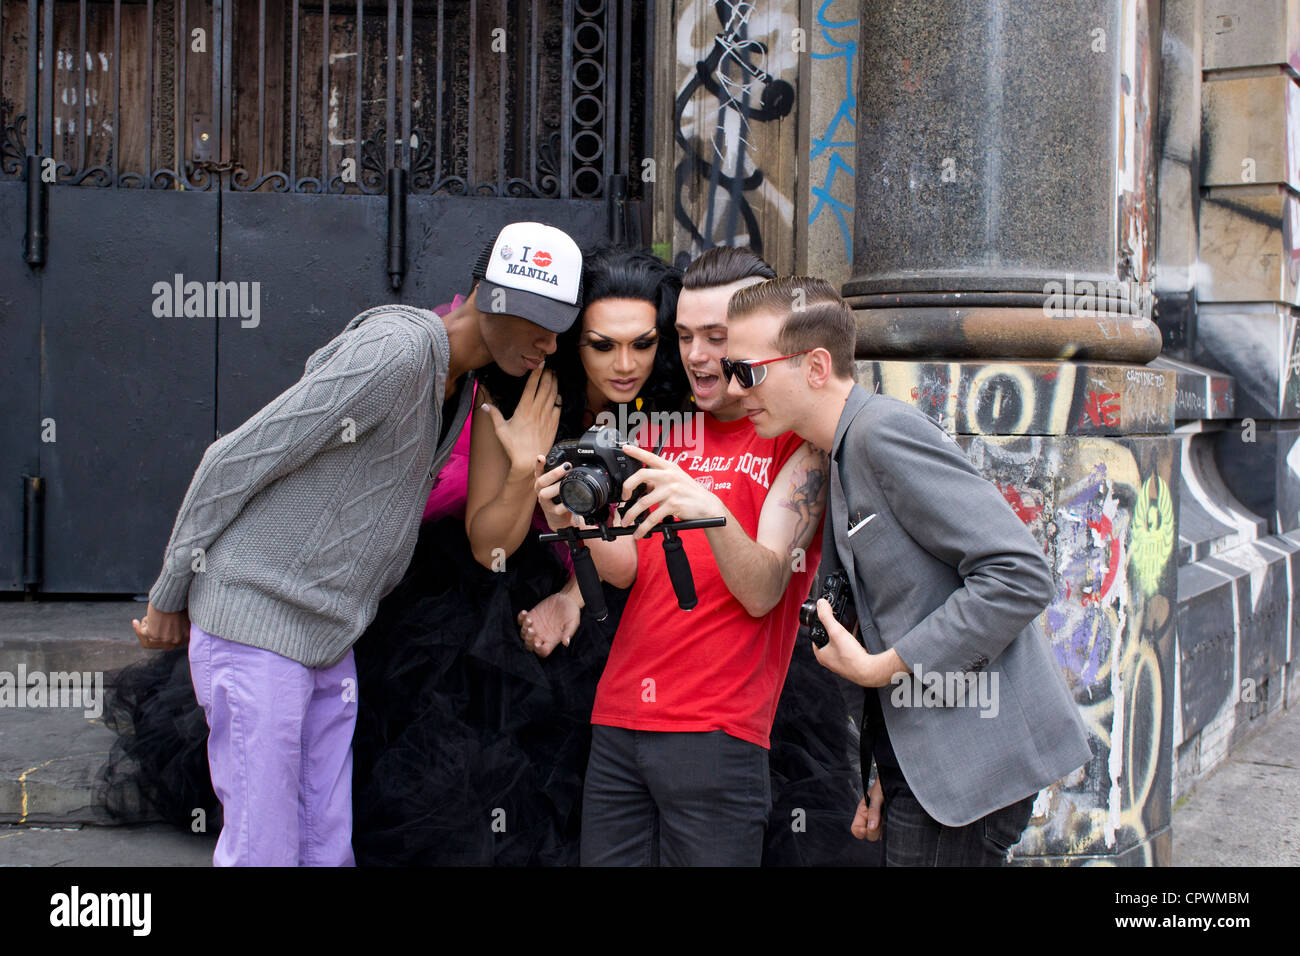 a-video-team-reviewing-a-fashion-shoot-w